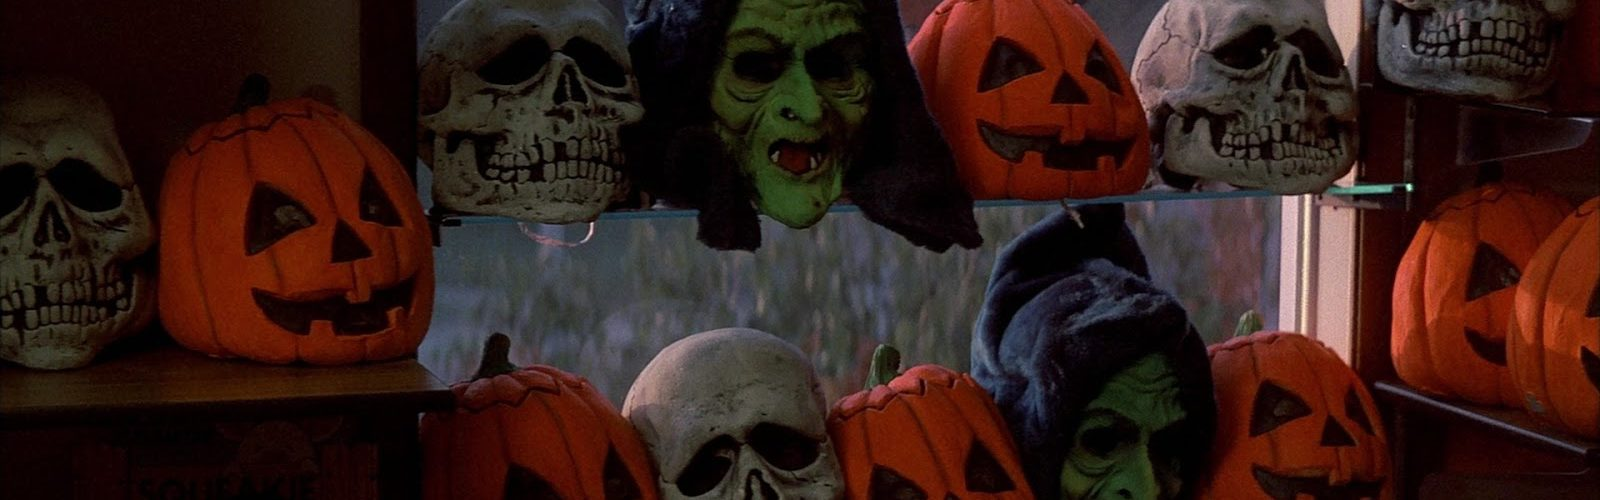 Defense Of The Cult Classic, Halloween III: Season of the Witch